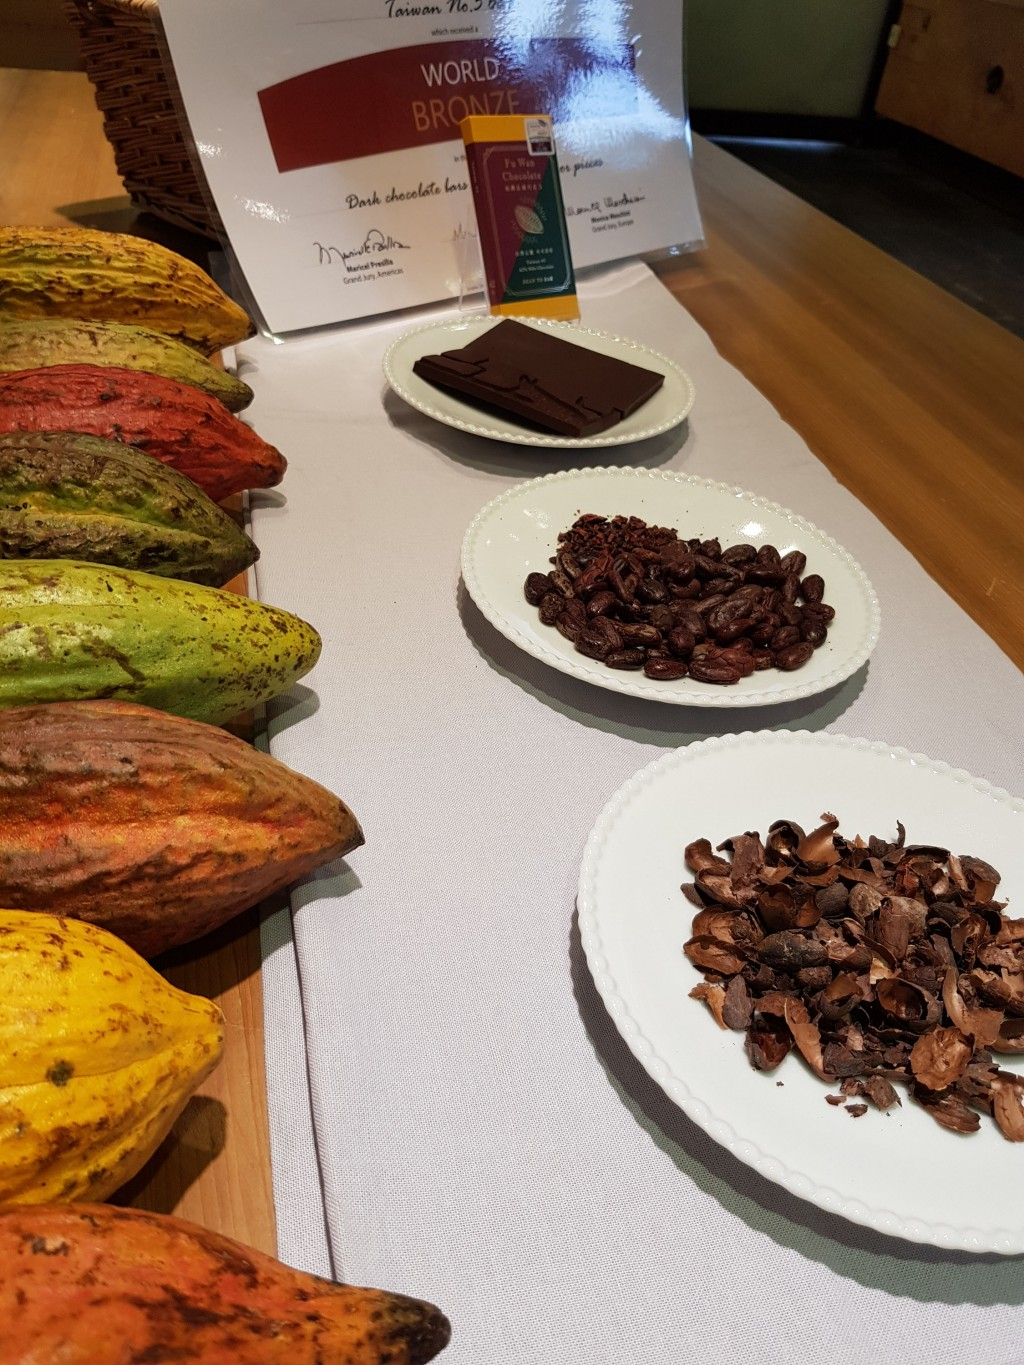 Tasting ceremony during the International Chocolate Awards